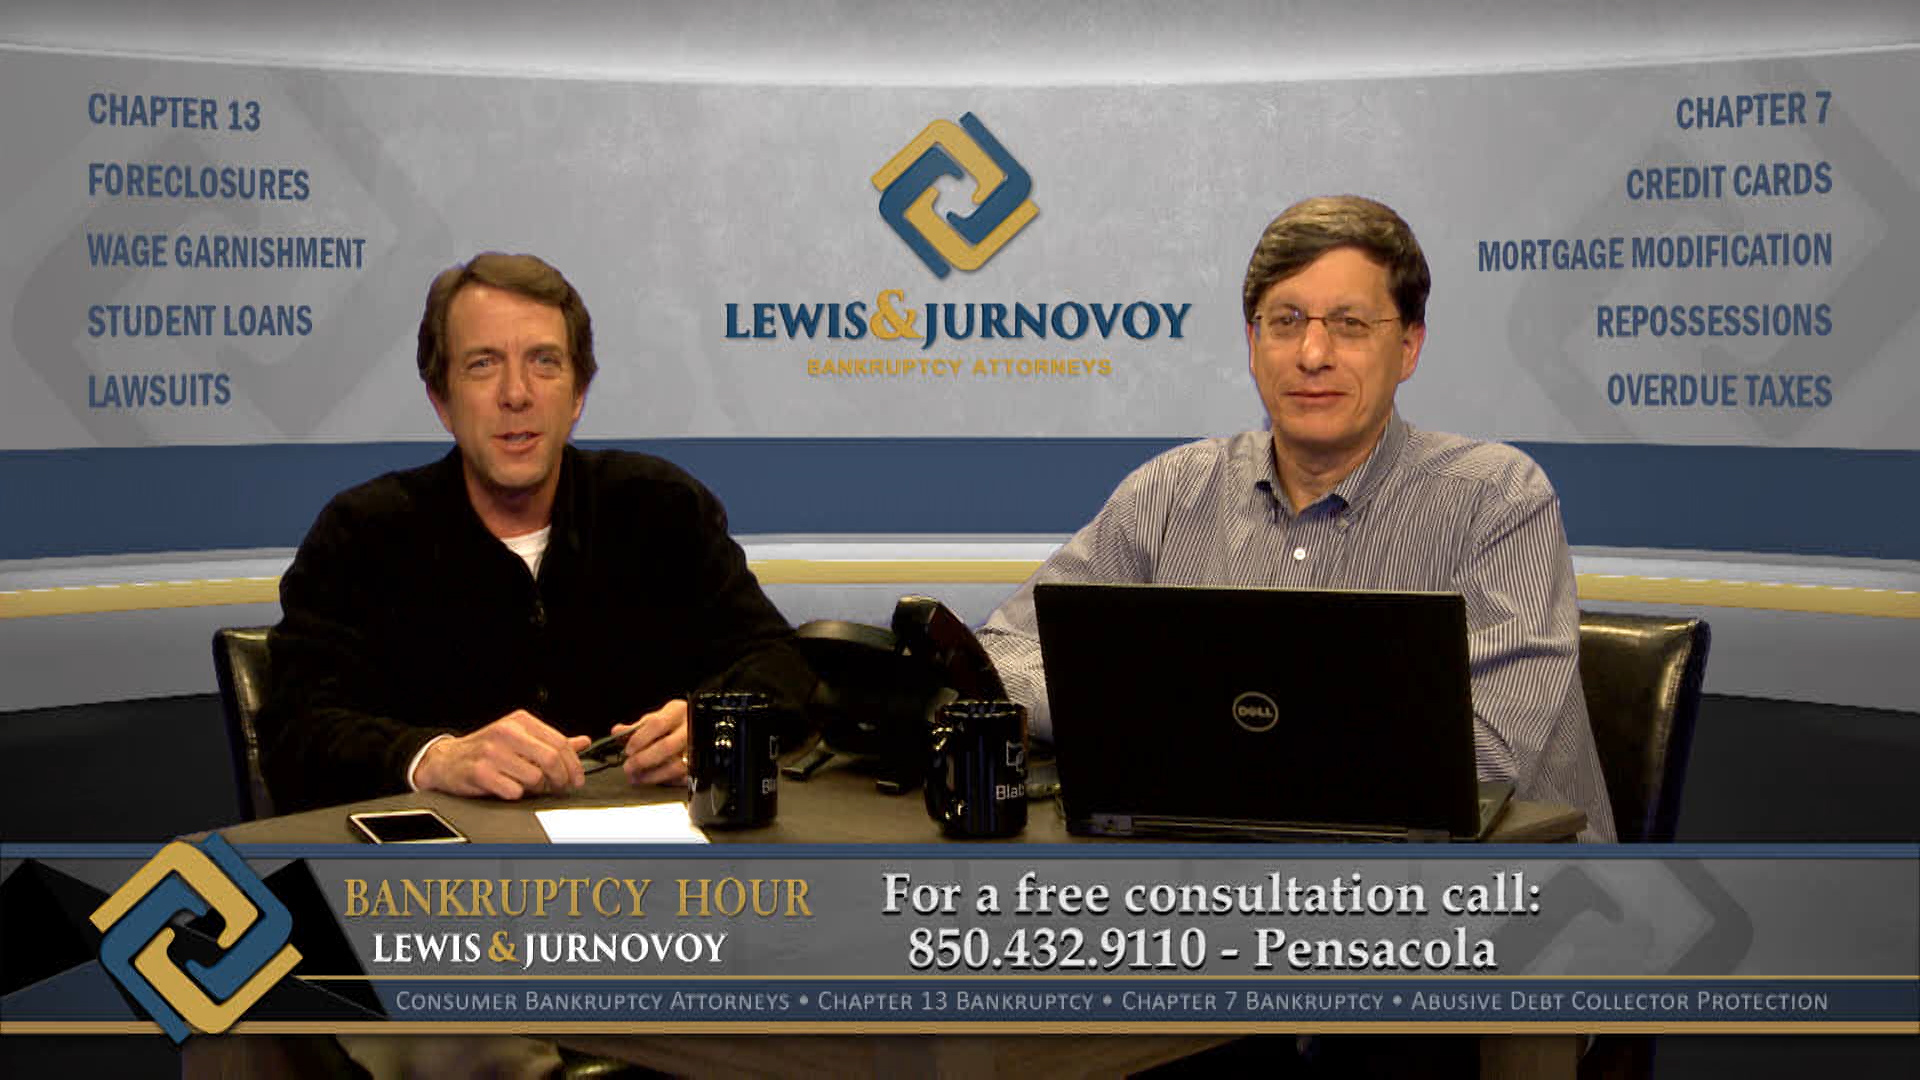 Bankruptcy Hour with Lewis & Jurnovoy